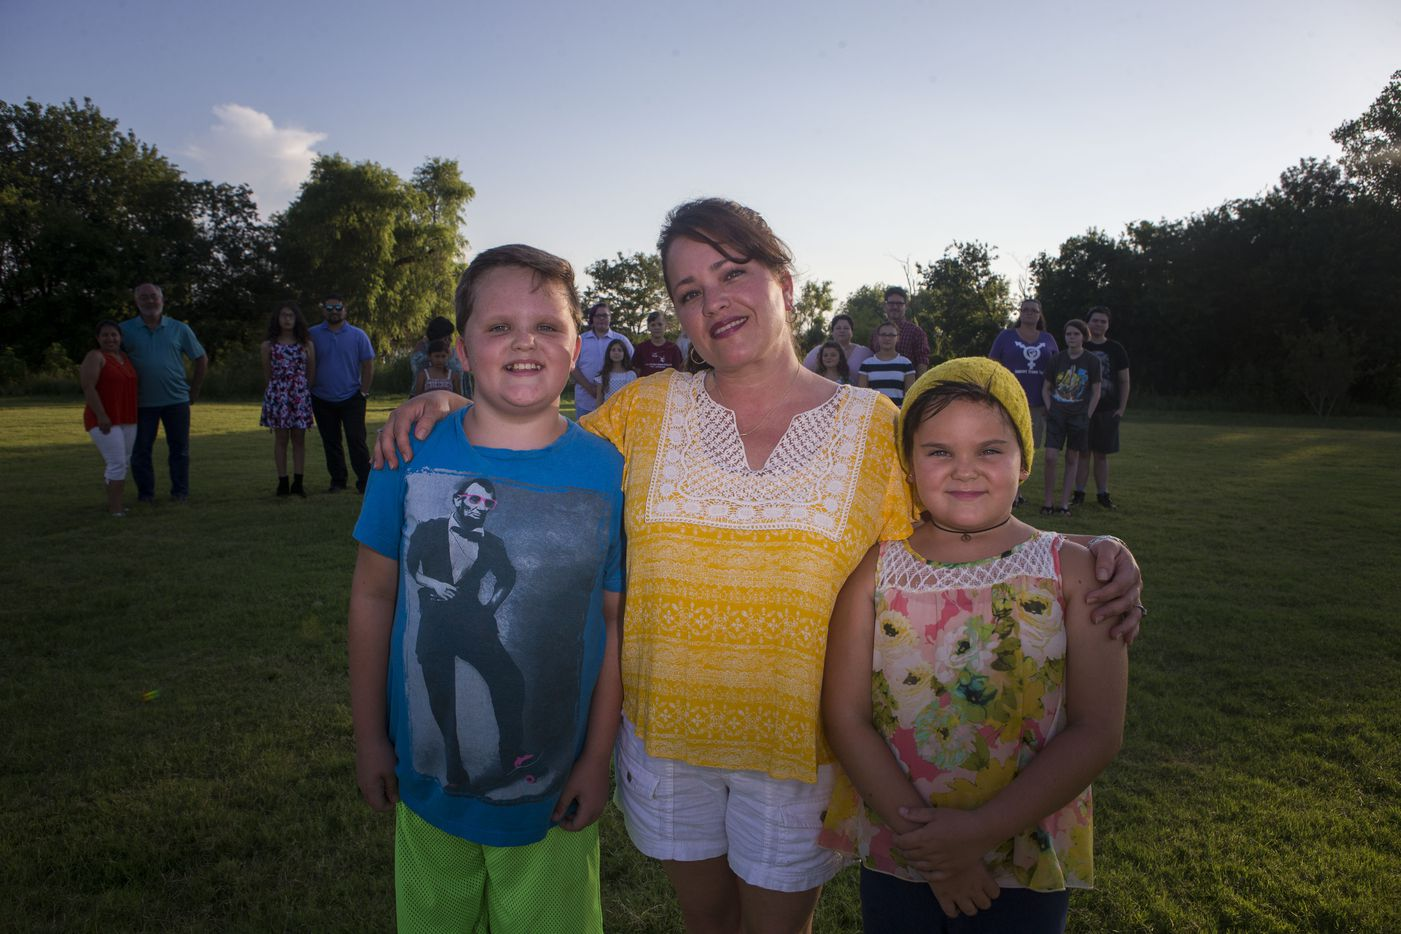 Miles, Chelsa and Marilyn Morrison on July 7, 2017, in Little Elm. The Morrisons are part of a group of families with transgender youth.